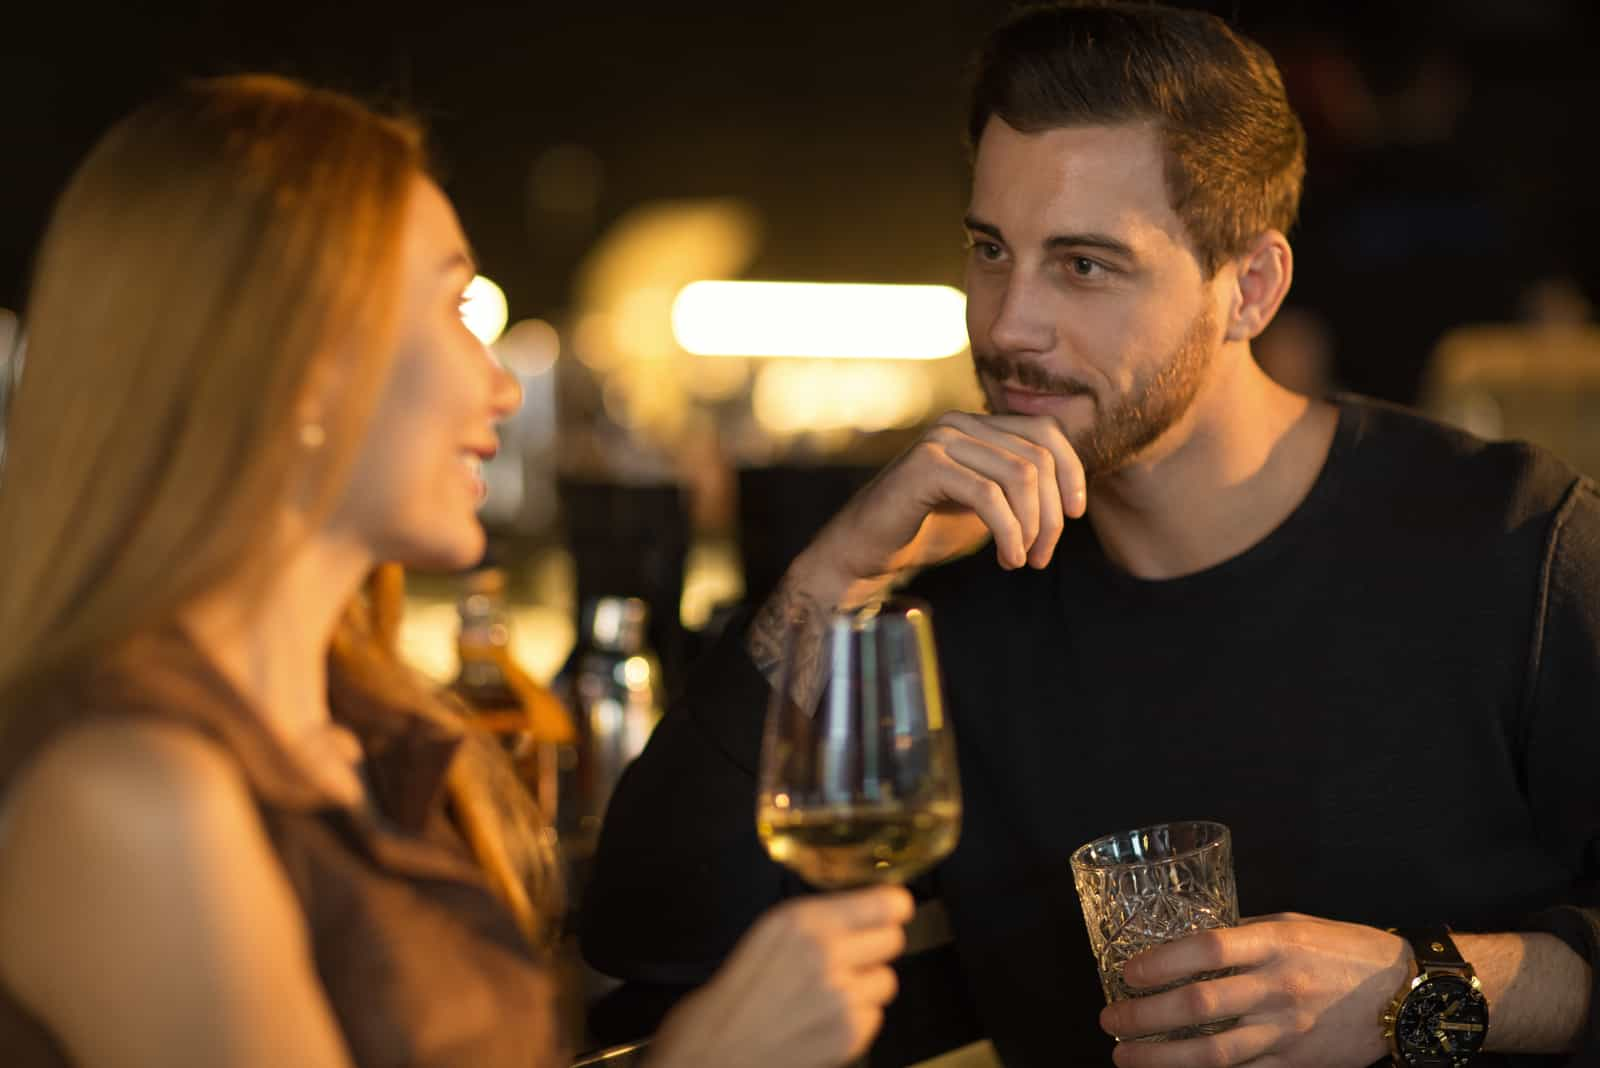 a man and a woman stand in a club and talk while drinking wine